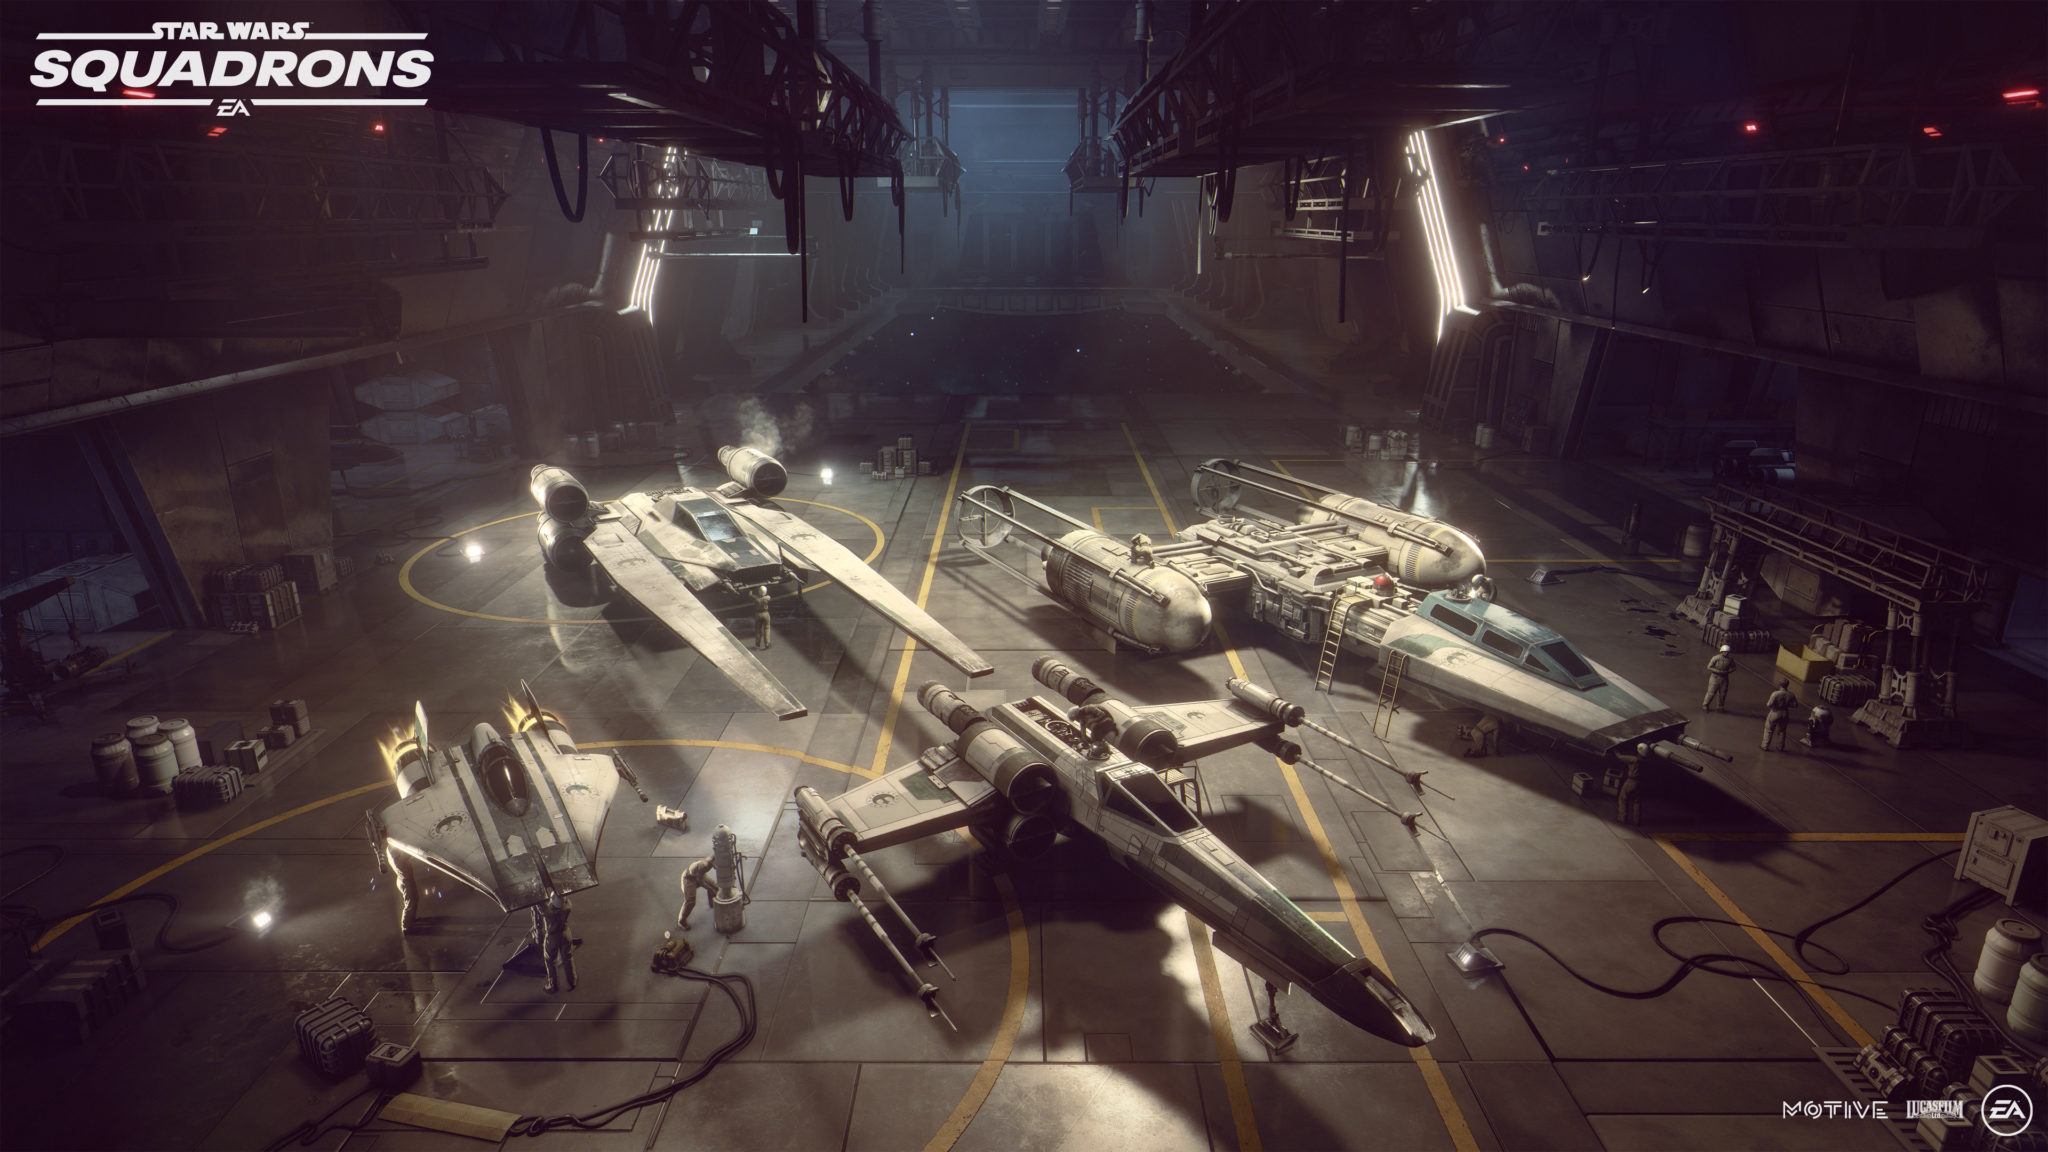 Star Wars: Squadrons will feature VR support for PC and PSVR.